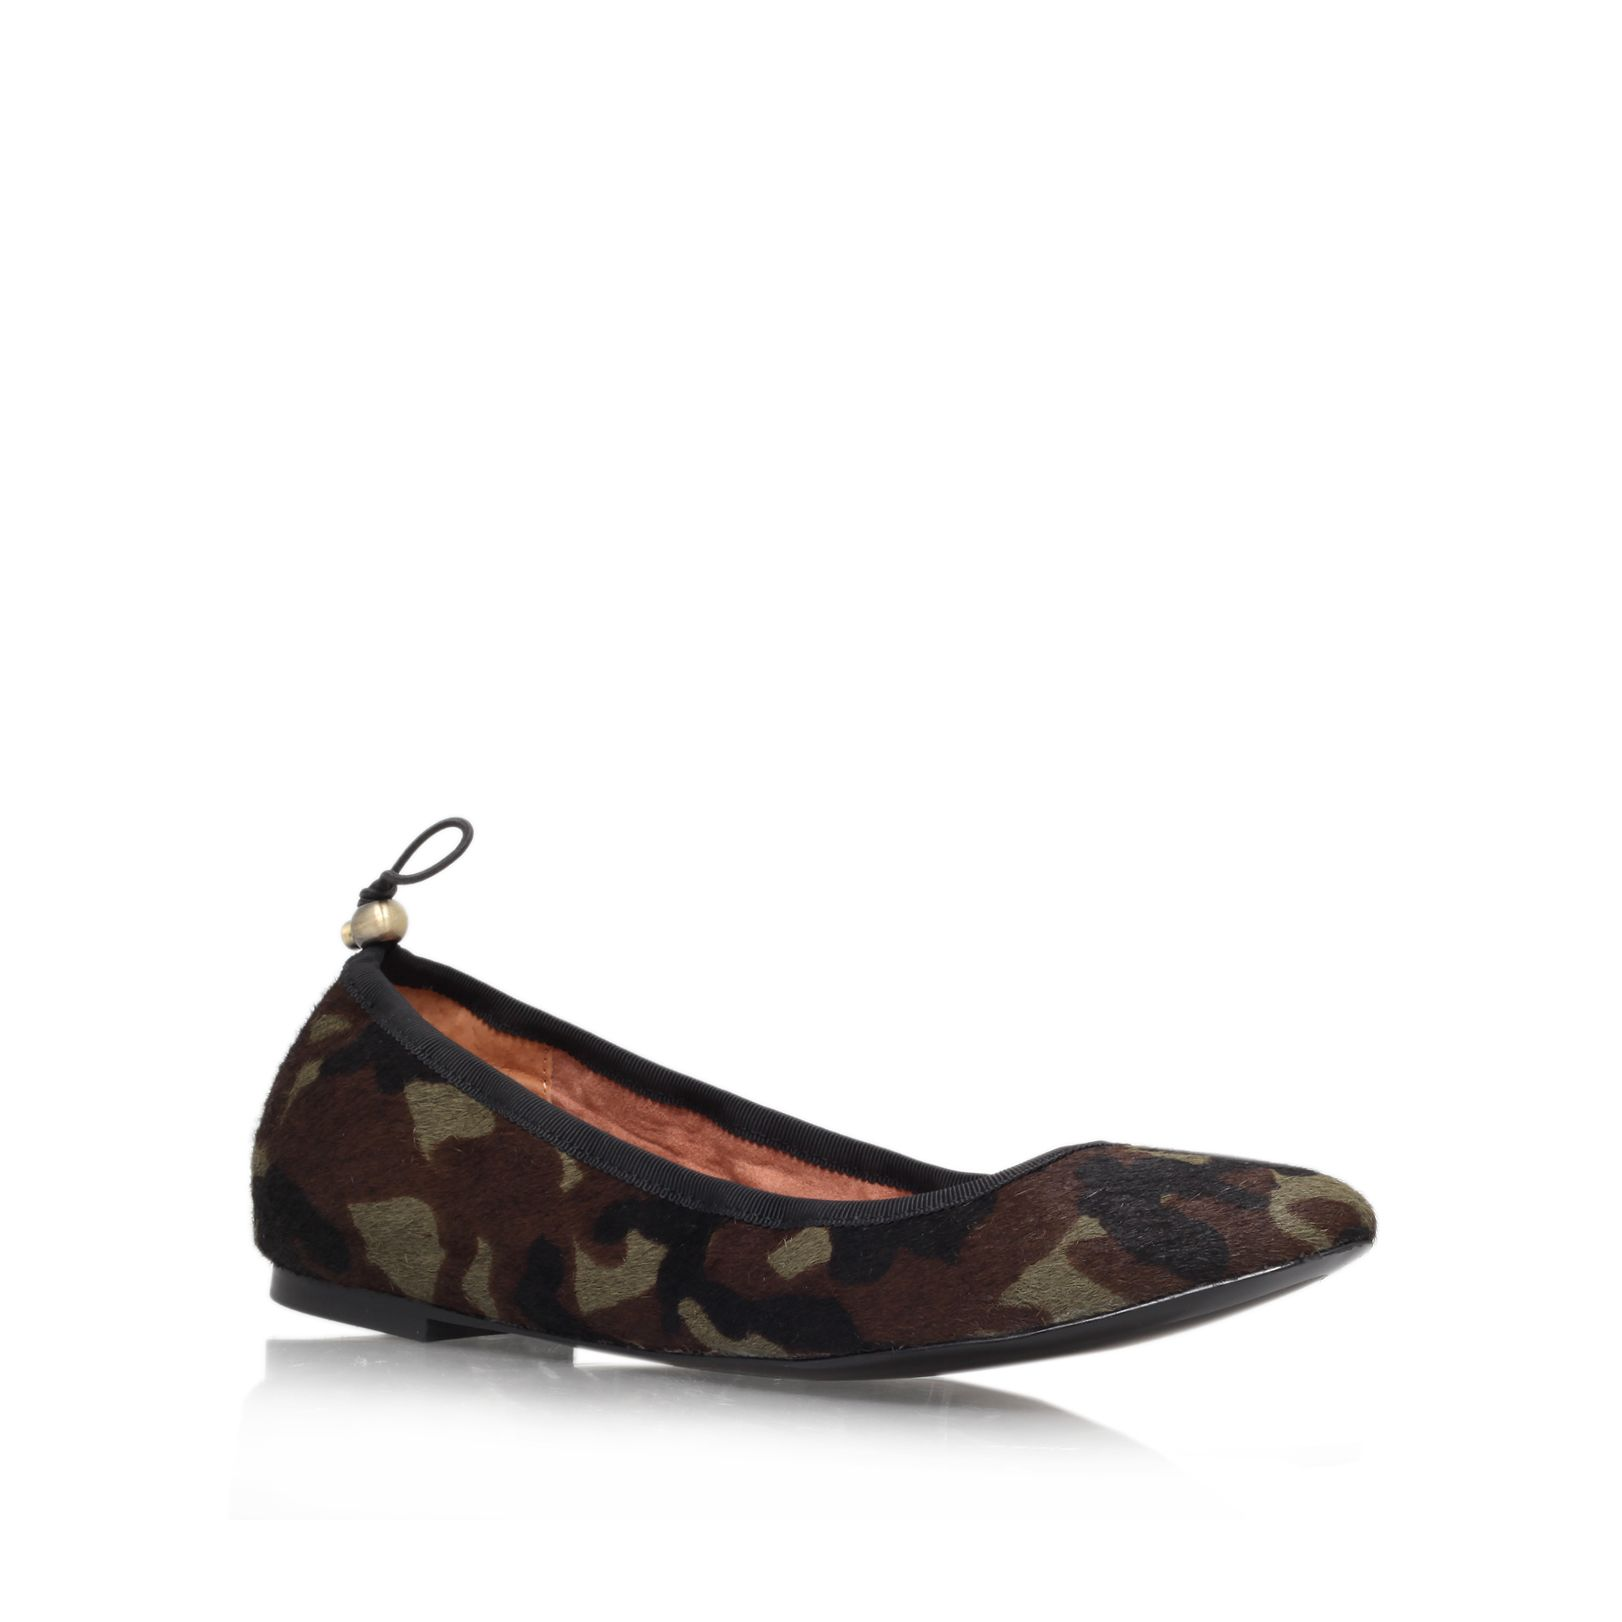 Jemilla slip on pumps